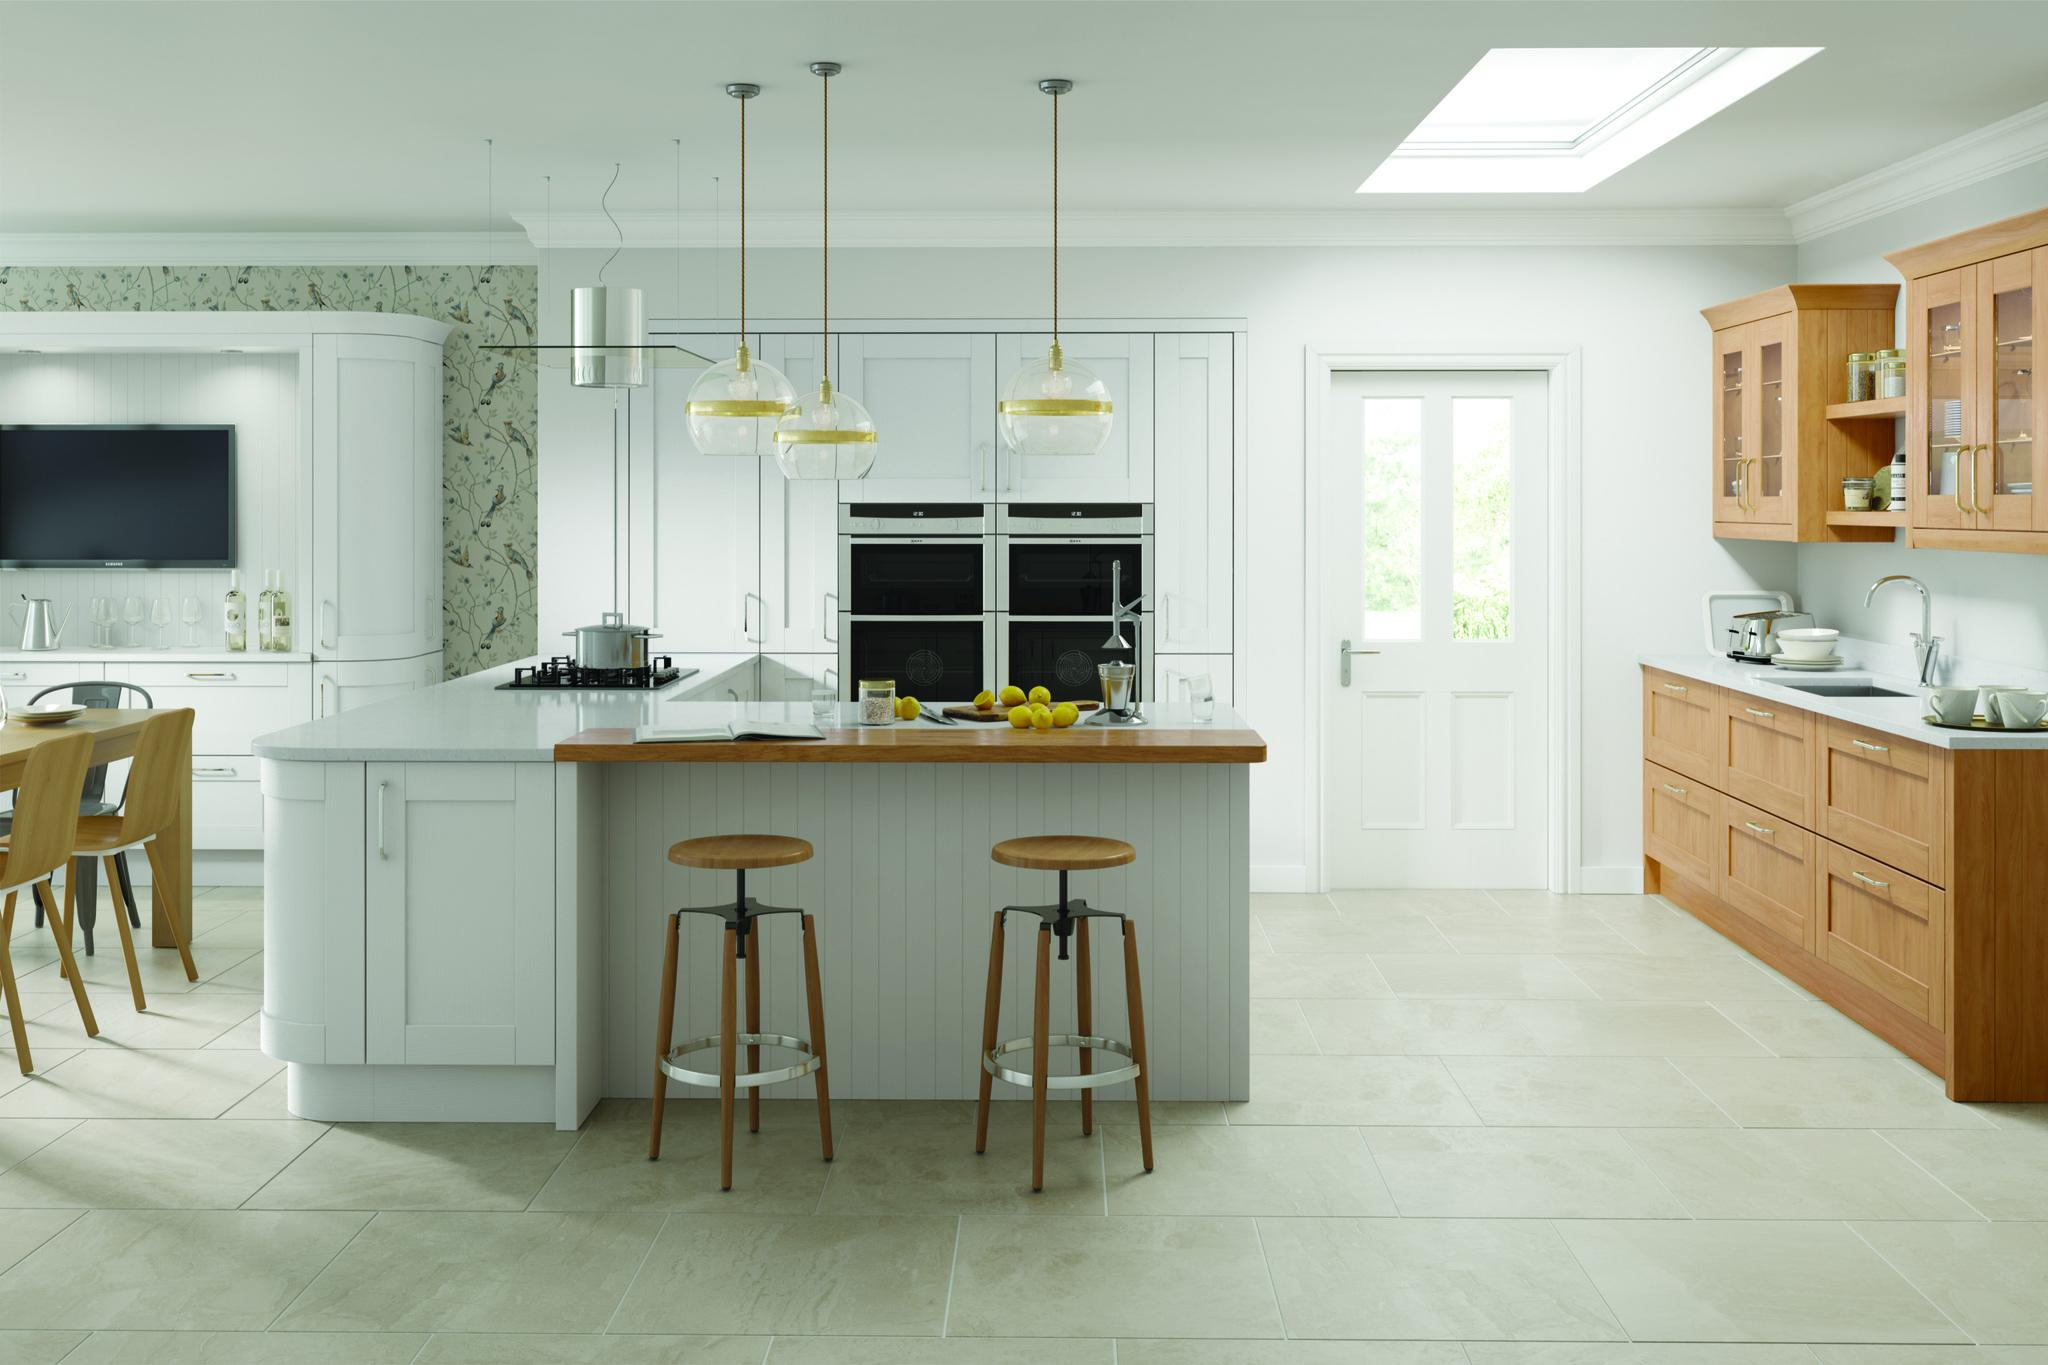 Replacement Kitchen Doors Bespoke Kitchens Cabinets Cupboards Leeds Contemporary Kitchens